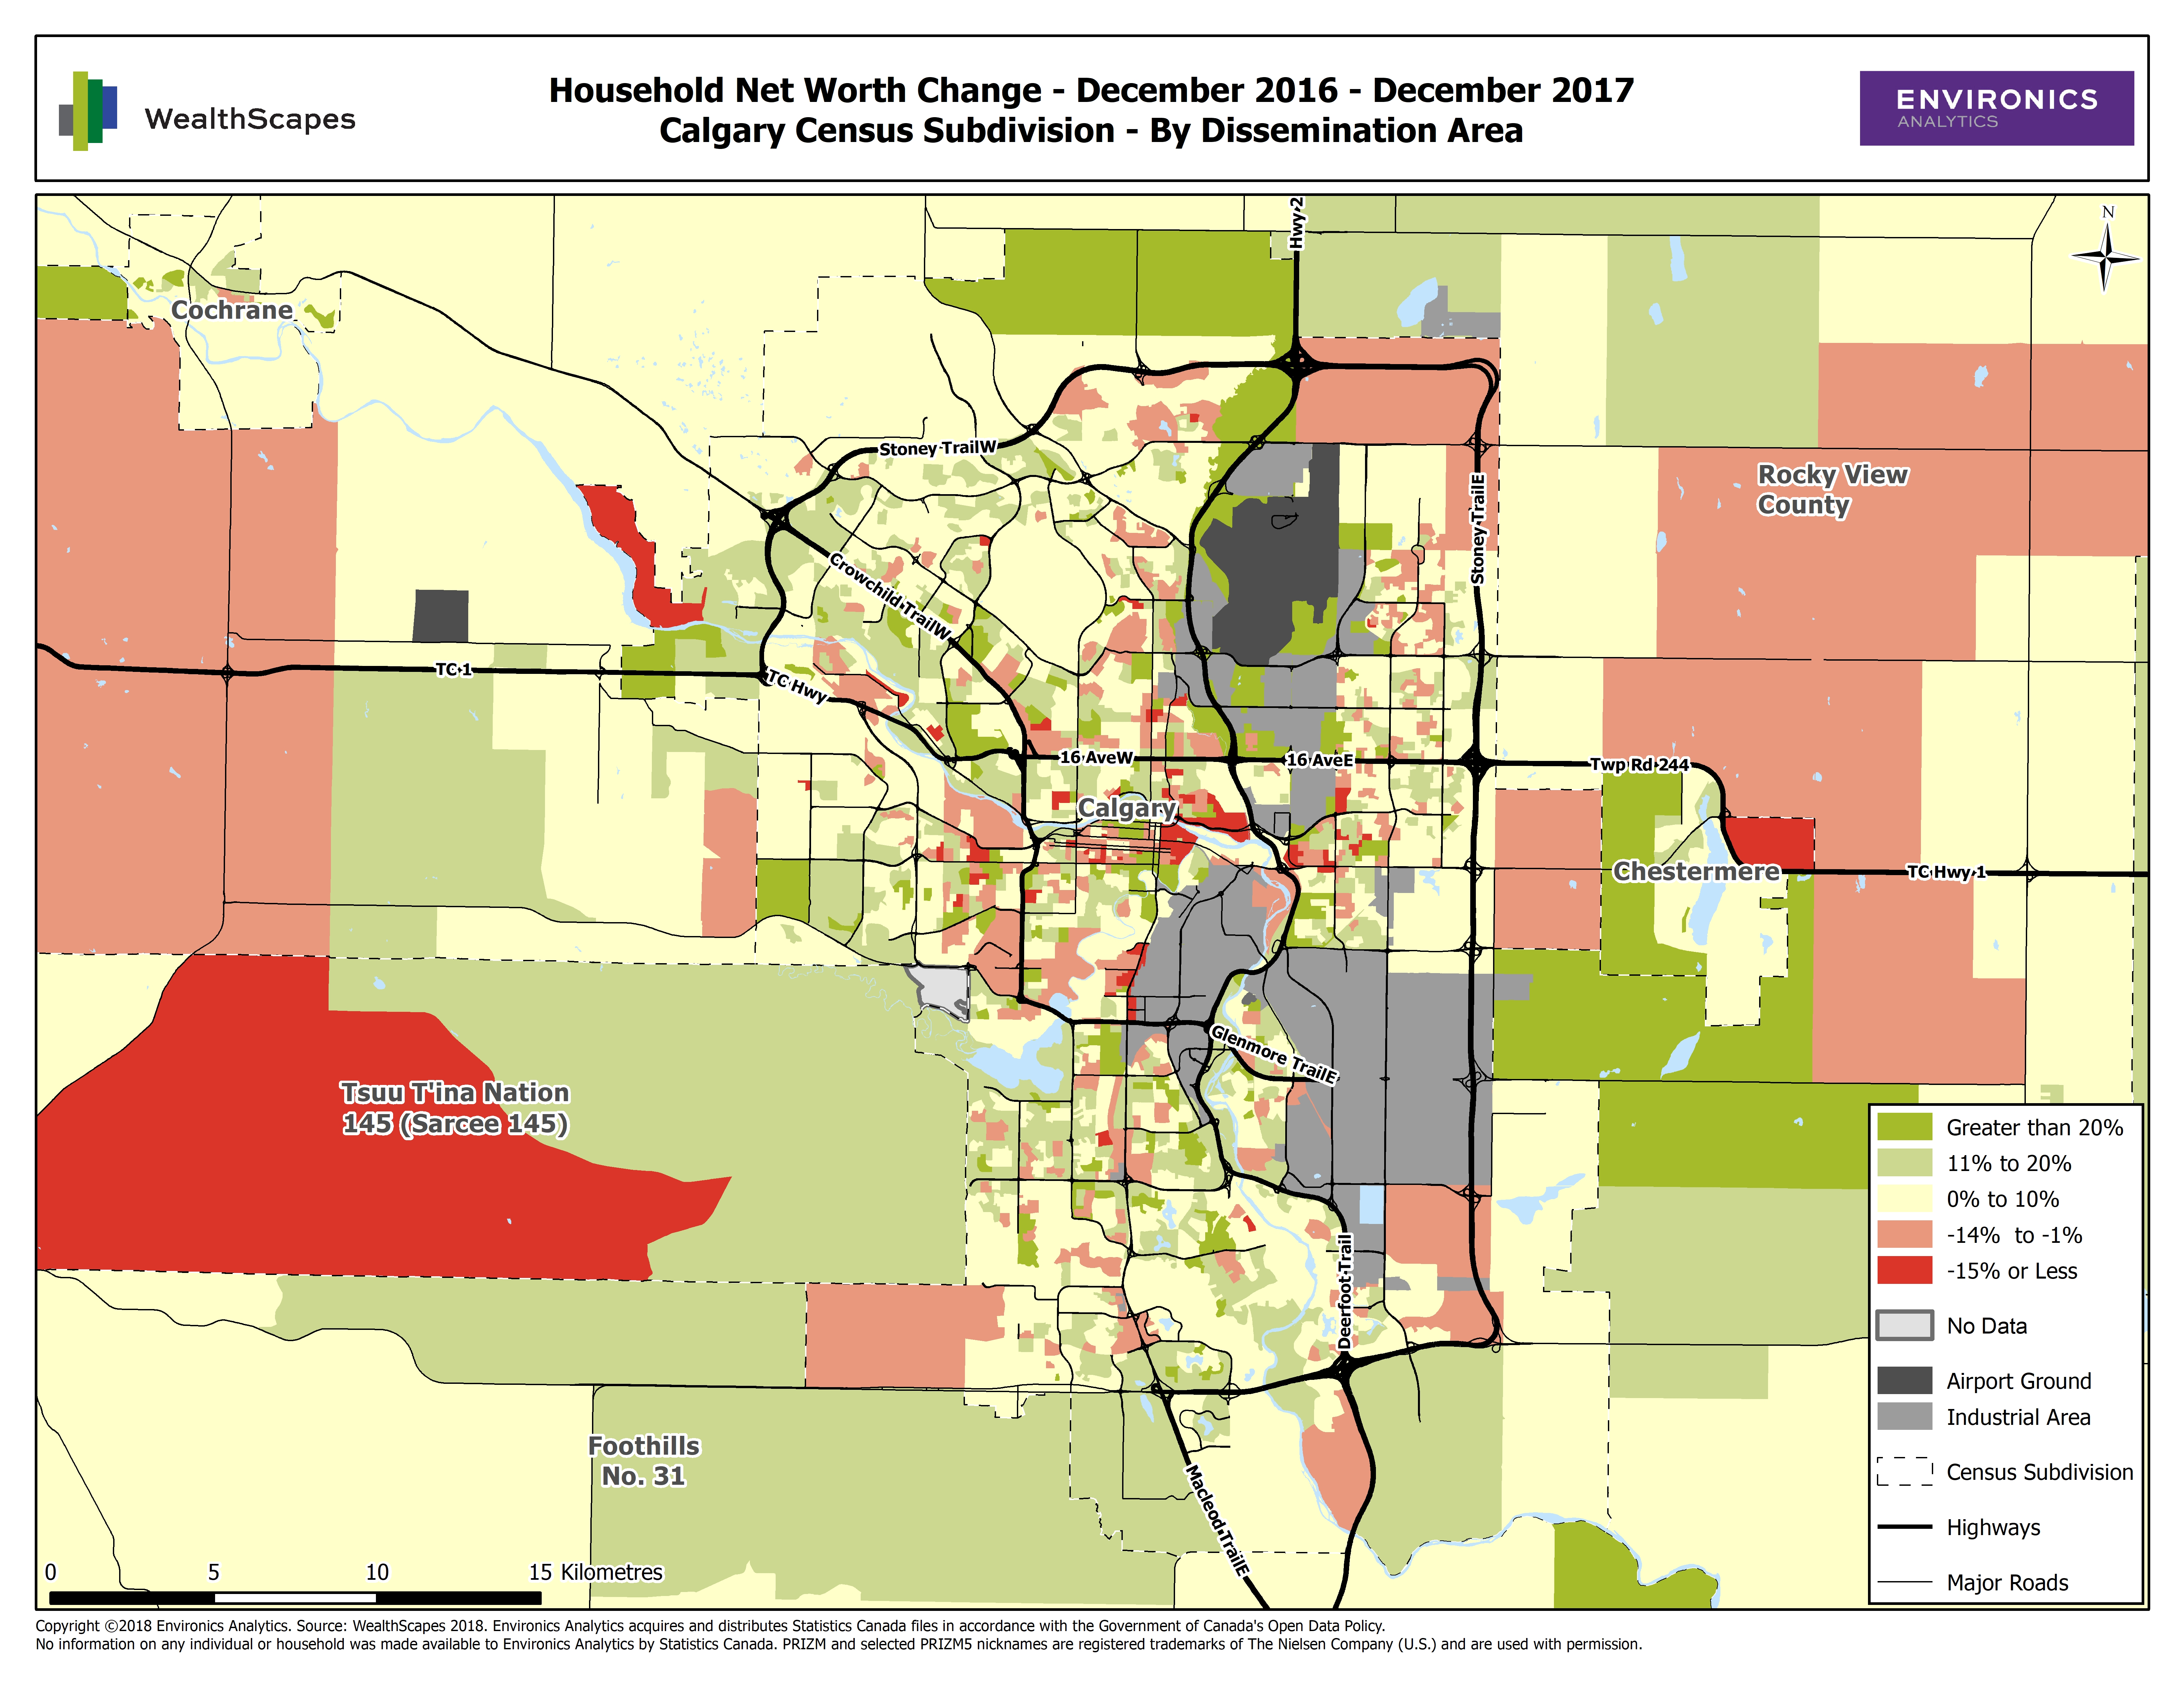 Map - WealthScapes 2018-Calgary Census Subdivision-Household Net Worth Change - December 2016 - December 2017